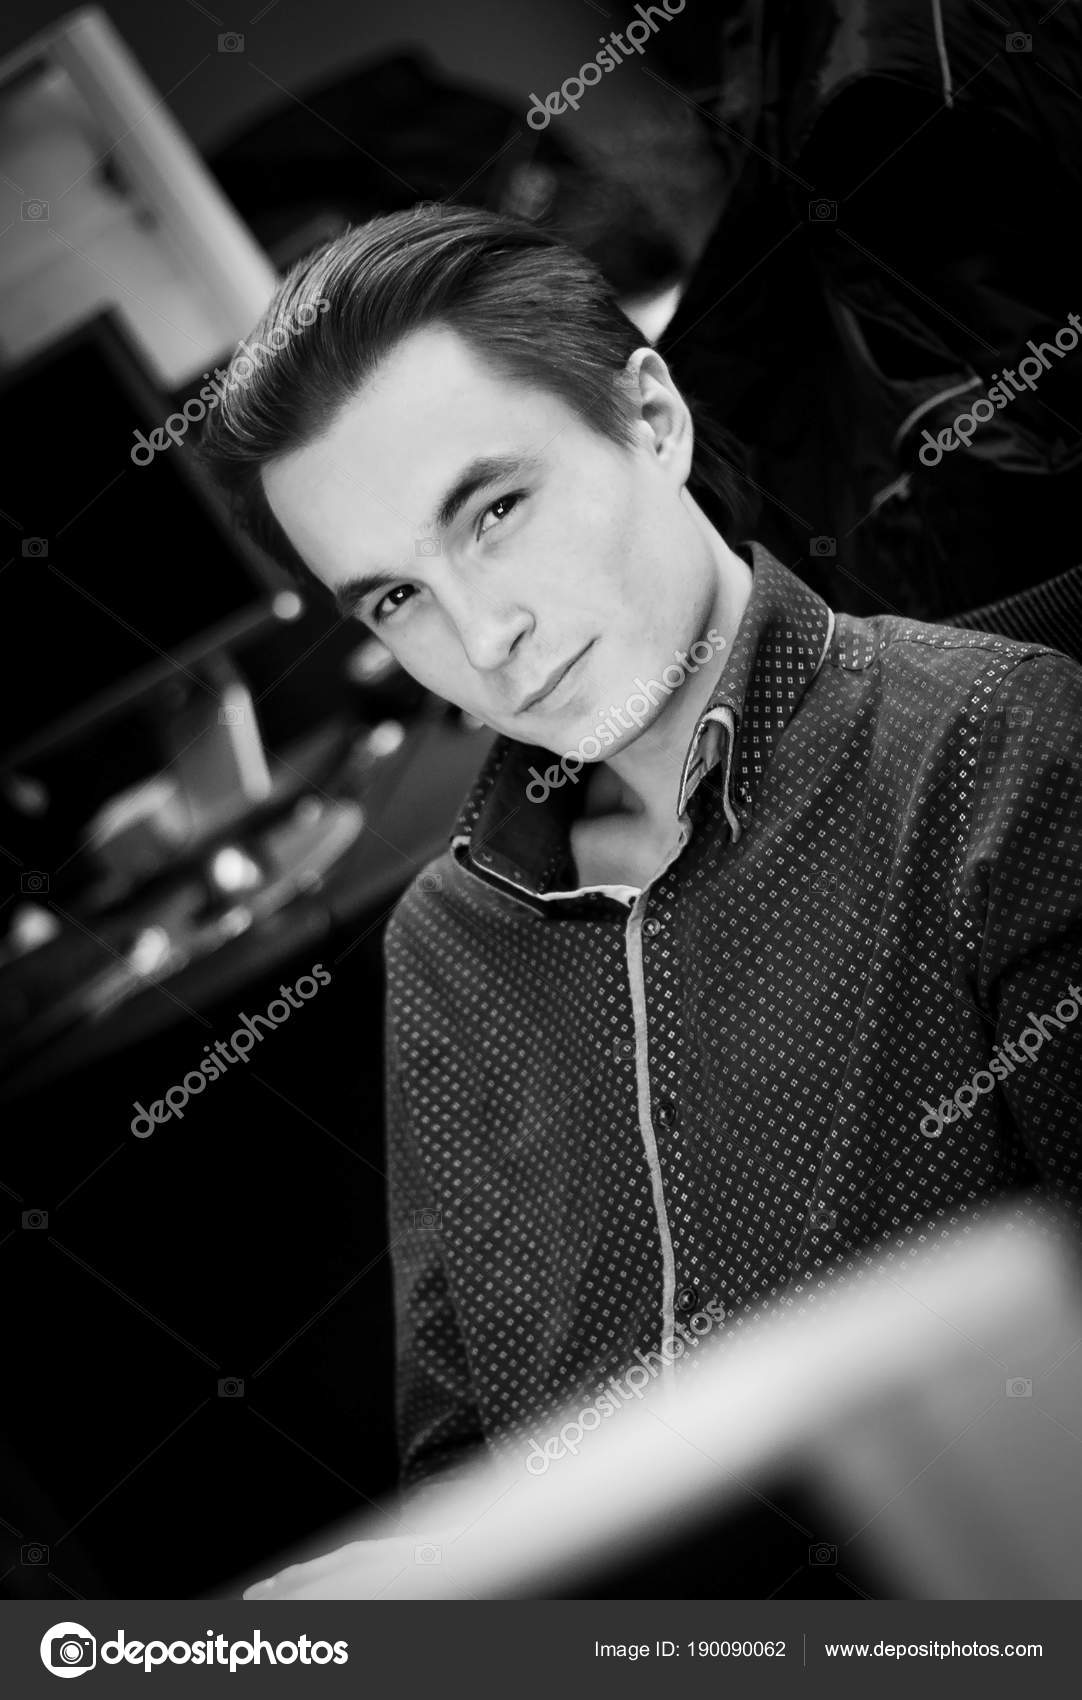 Portrait of a young cute guy in a shirt in an office setting black and white image